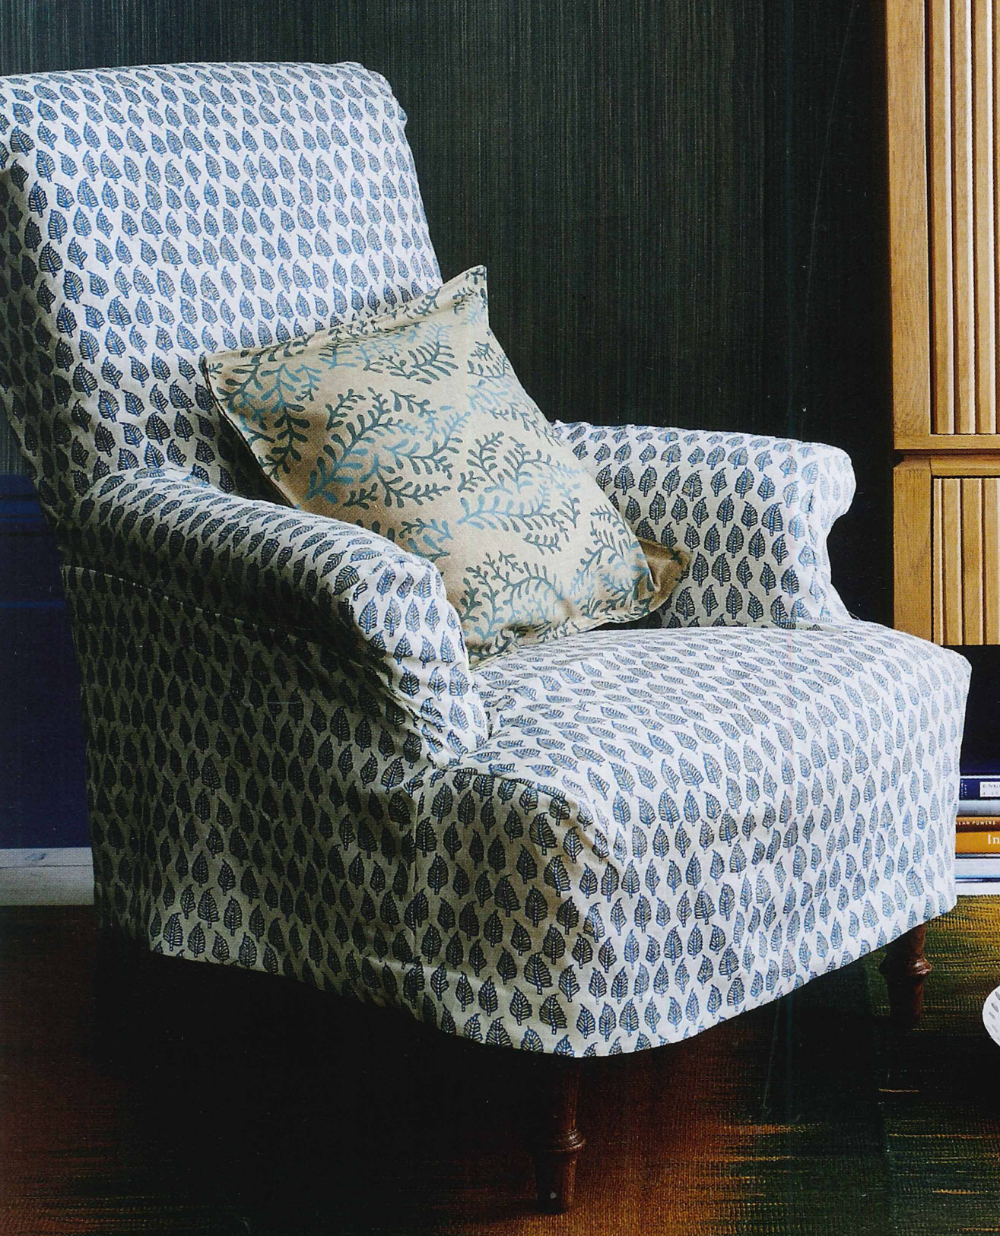 Kusum Slipcovers for chairs, Furniture slipcovers, Funky